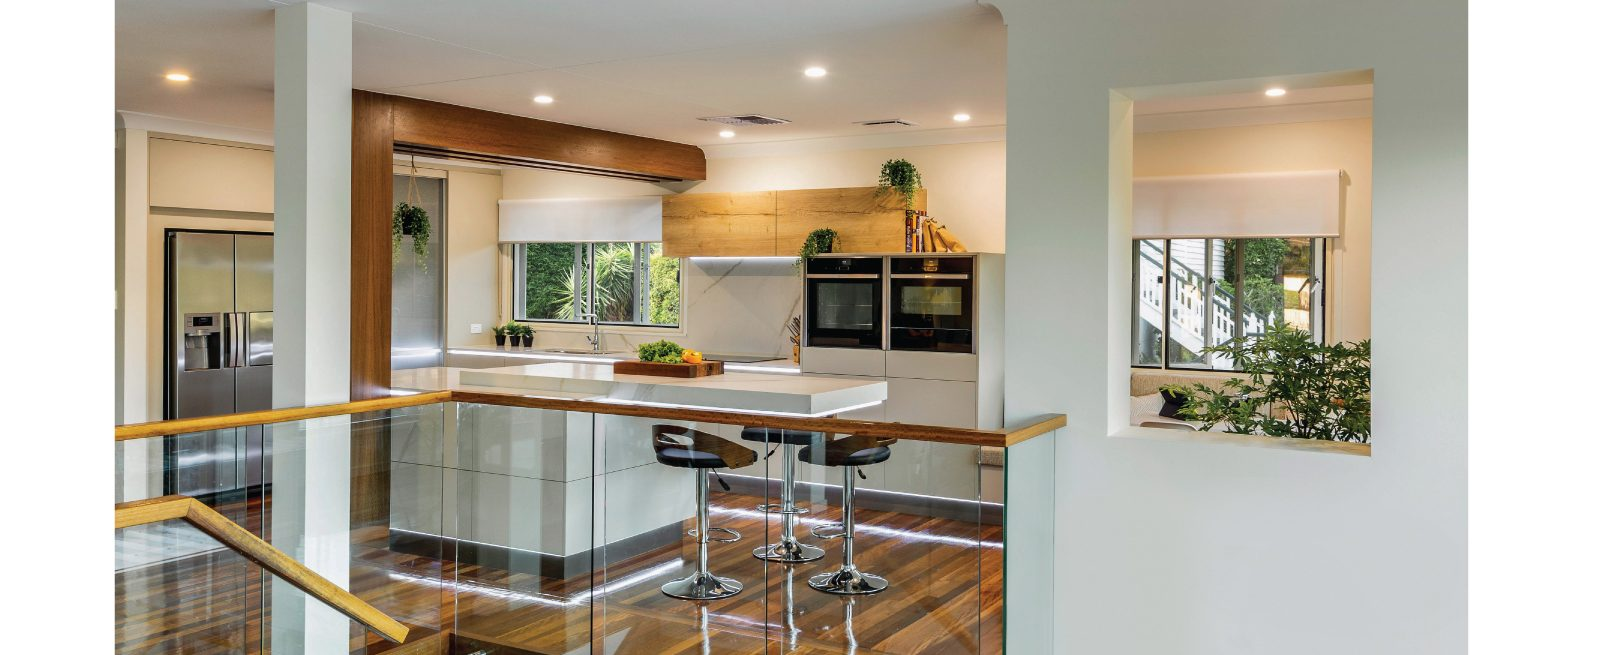 Kitchen Design by Kim Duffin of Sublime Architectural Interiors